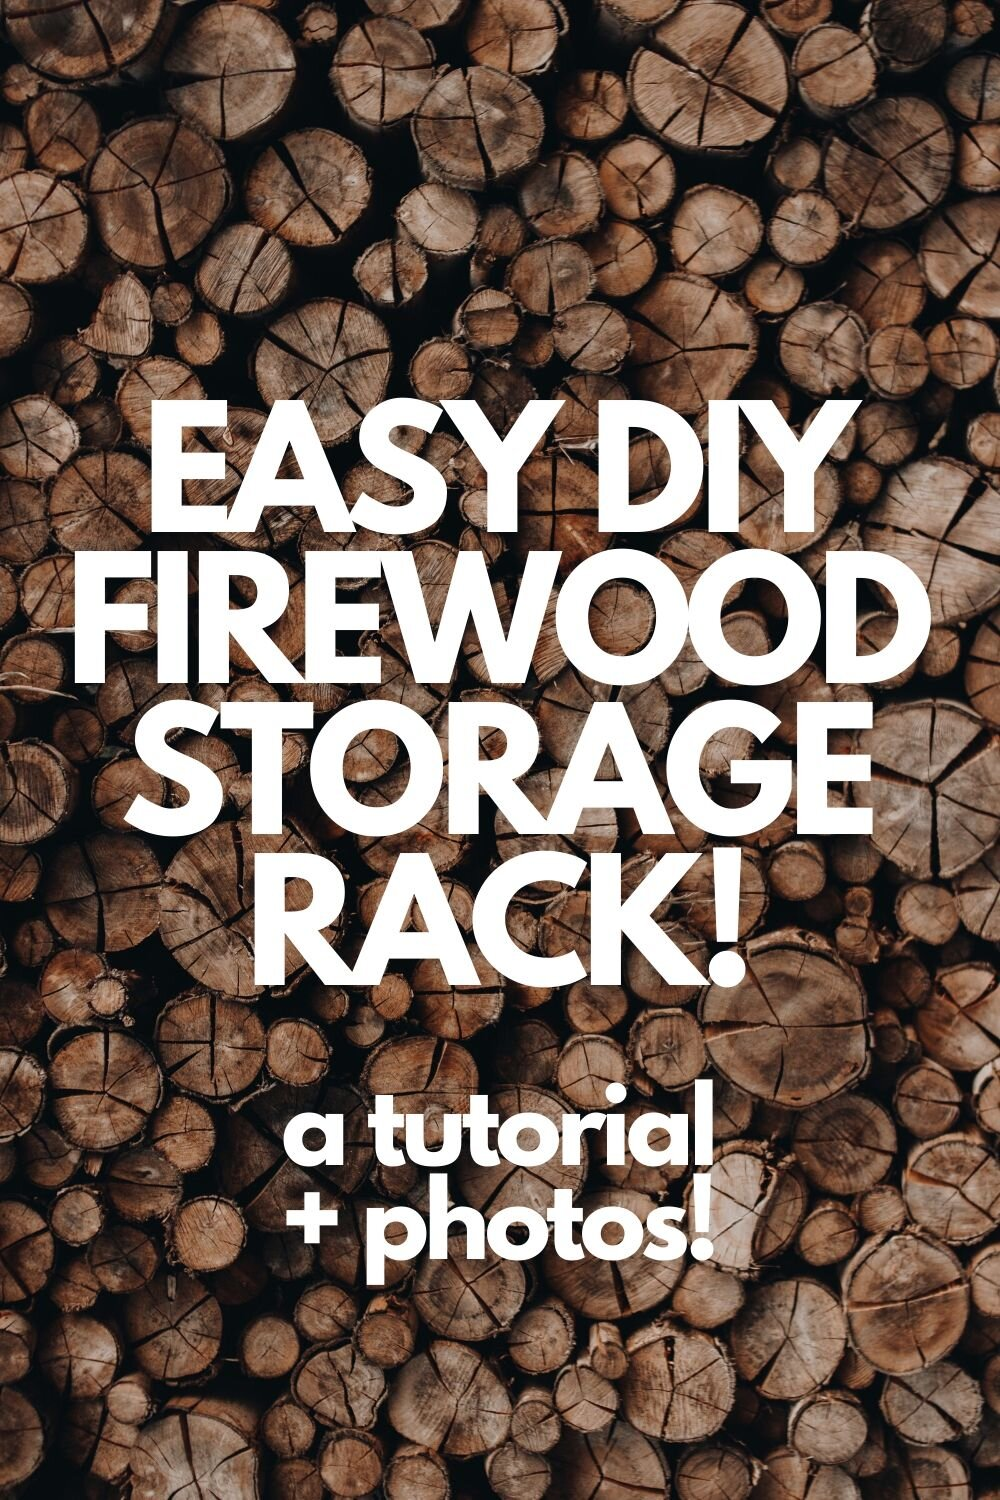 DIY EASY FIREWOOD  STORAGE RACK!